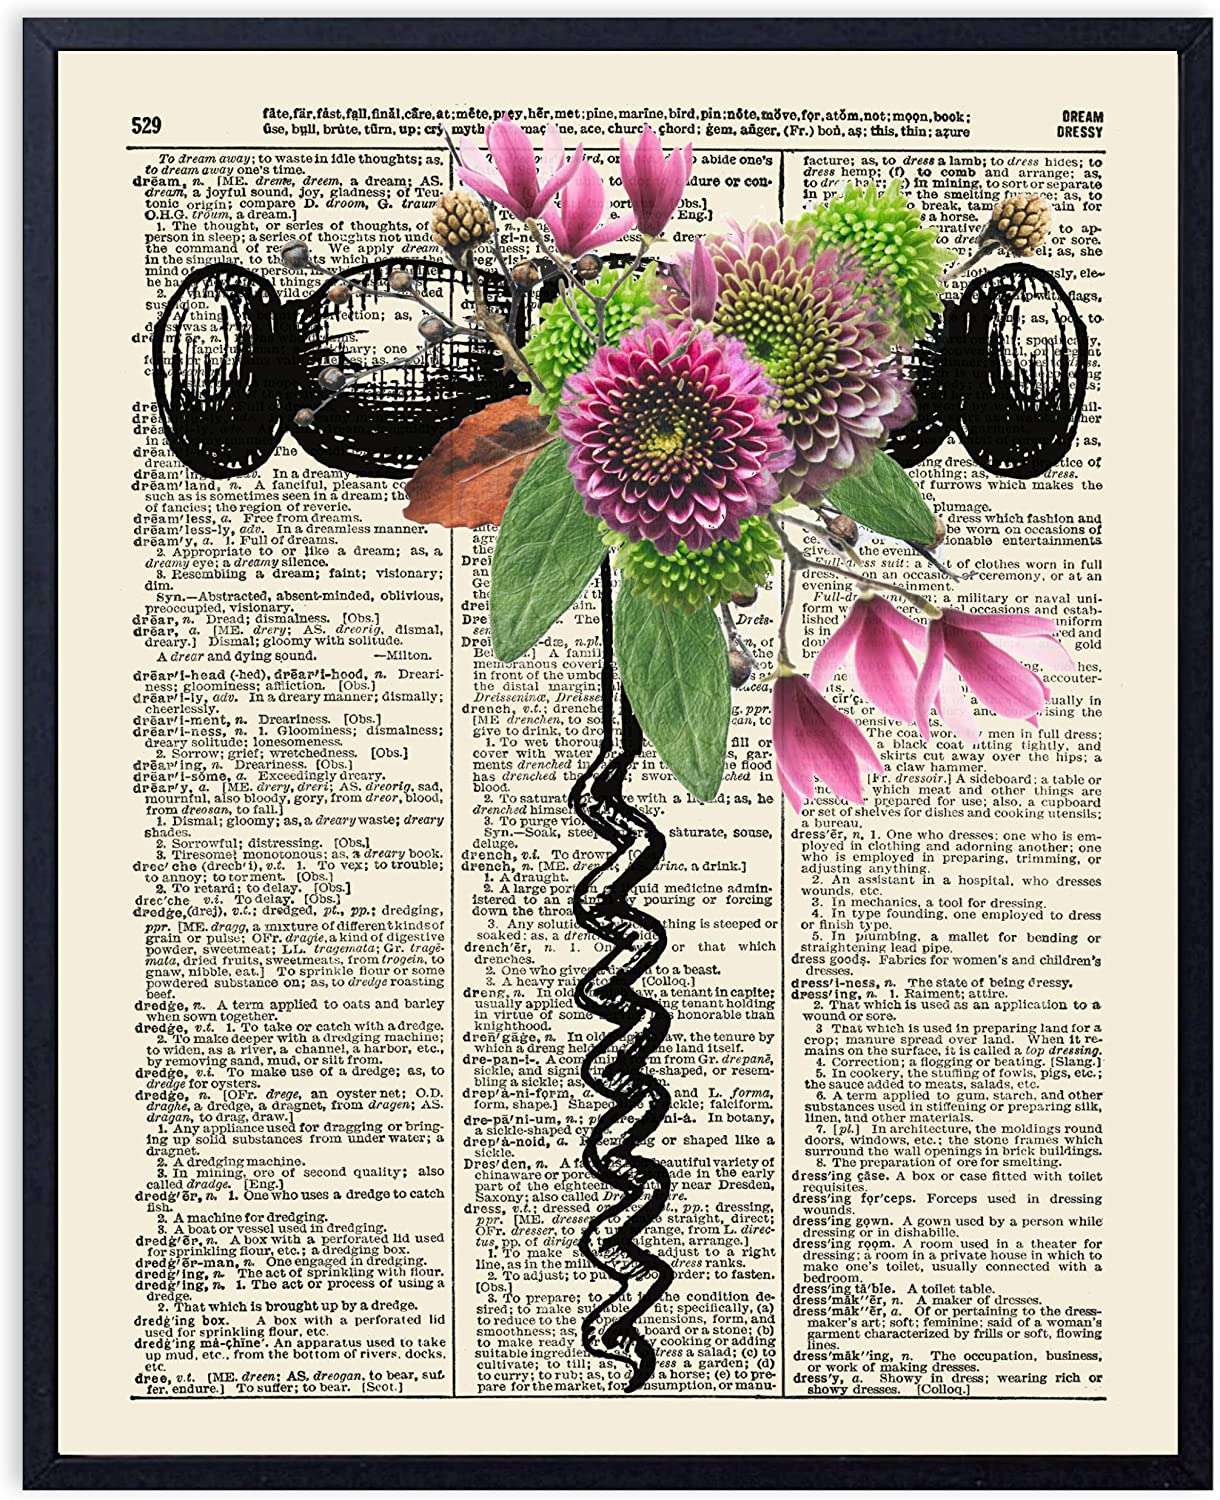 Printsmo, Wine Cork Screw with Flowers, Vintage Dictionary Art Print, Wine Lover Art Print with Rustic Floral Arrangement, Wall Art for Home Decor and Kitchen Decor, 8x10 inches, Unframed